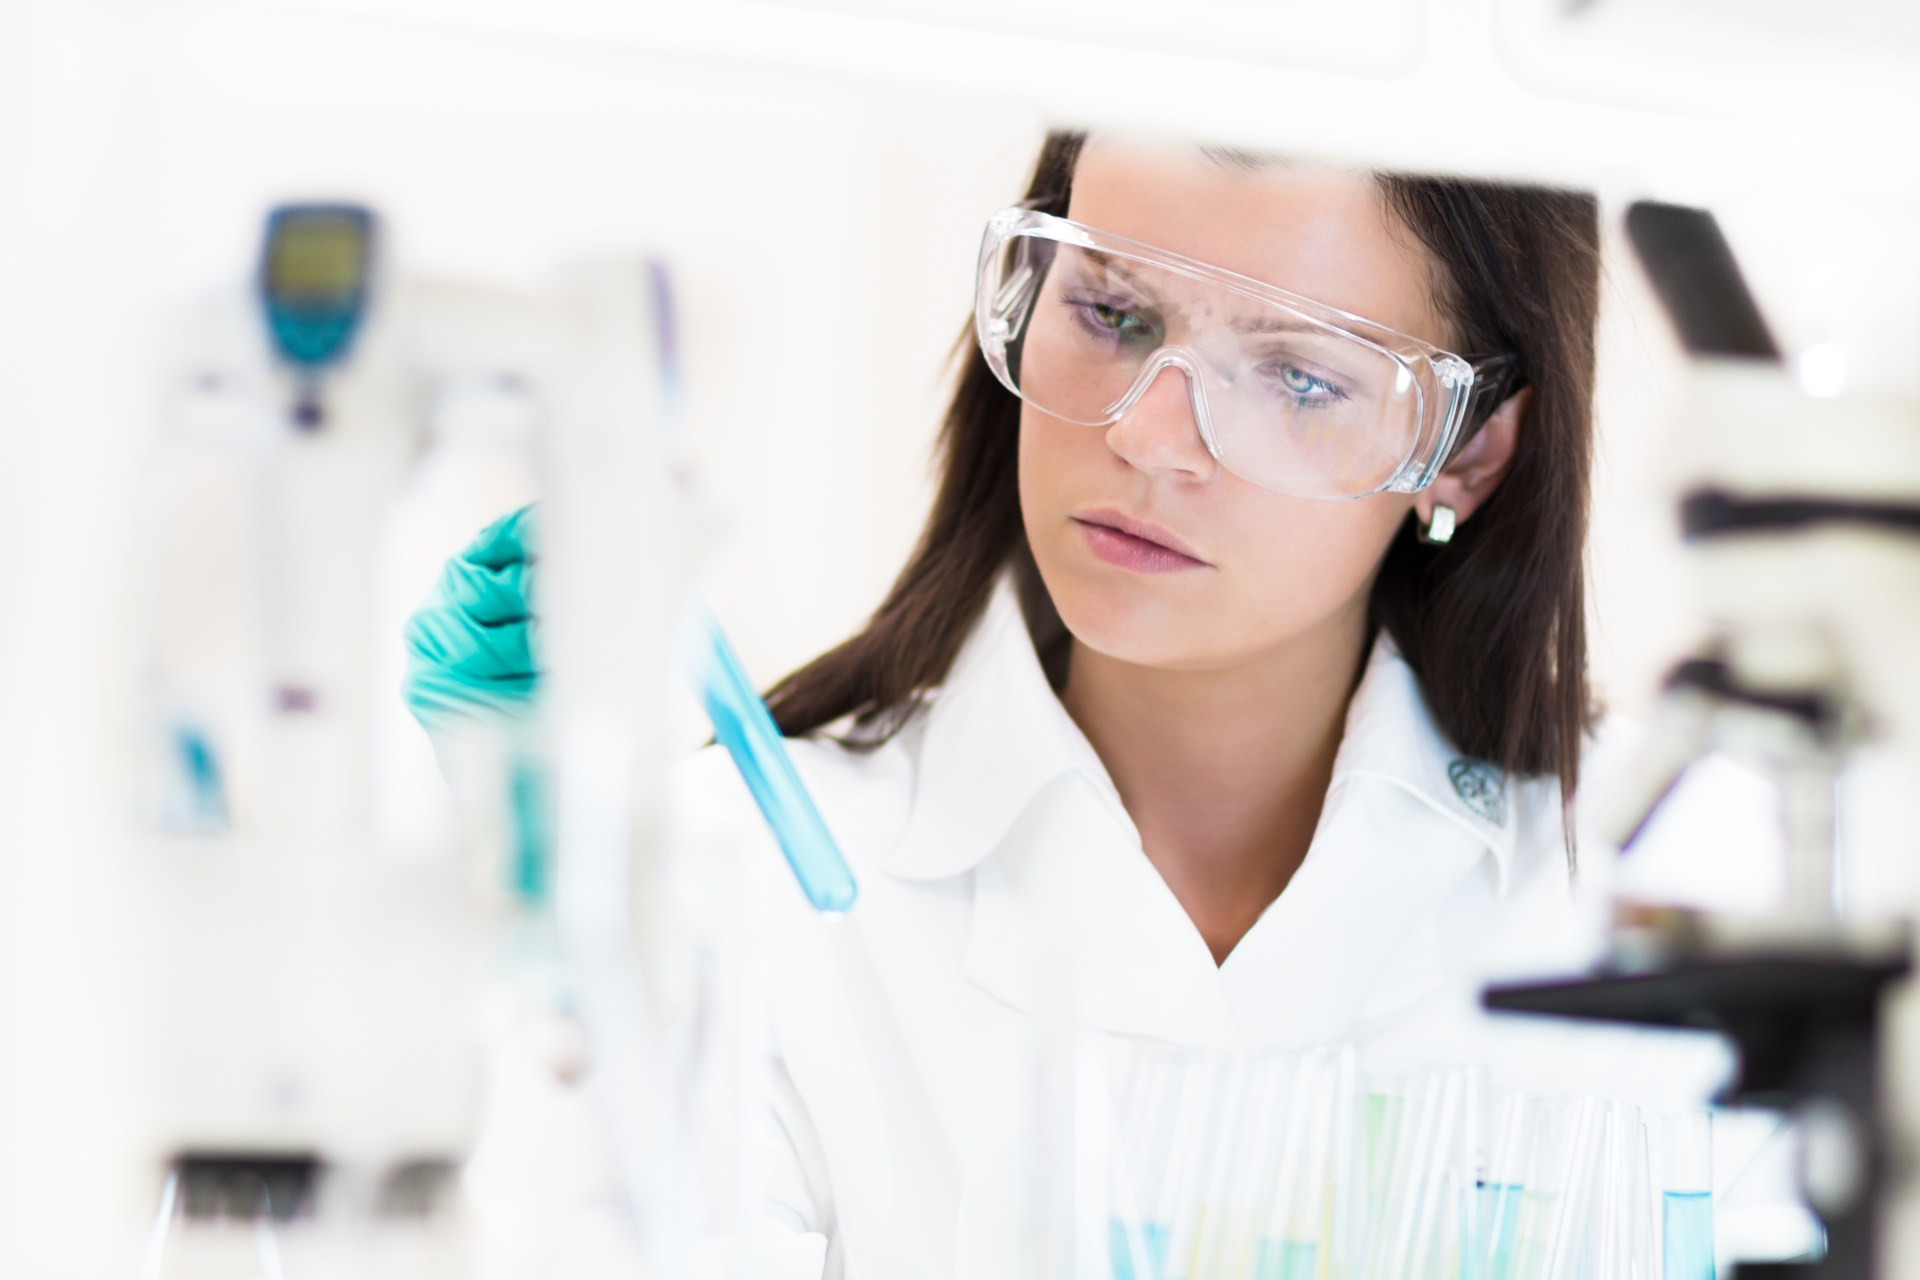 Our team provides a helpful guide to understand IVF lab roles